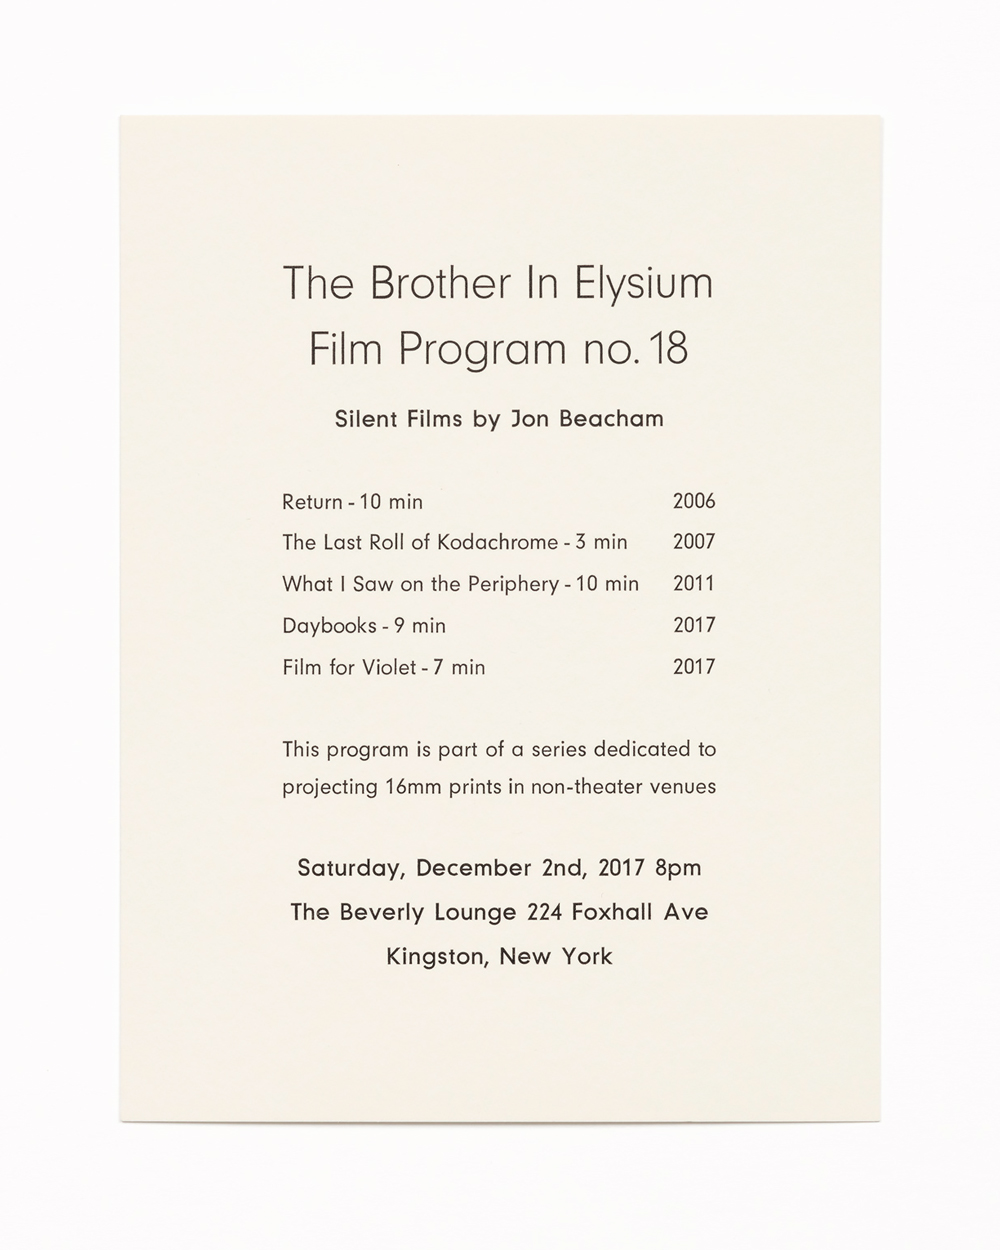 The Brother In Elysium Film Program no. 18, Silent Films by Jon Beacham